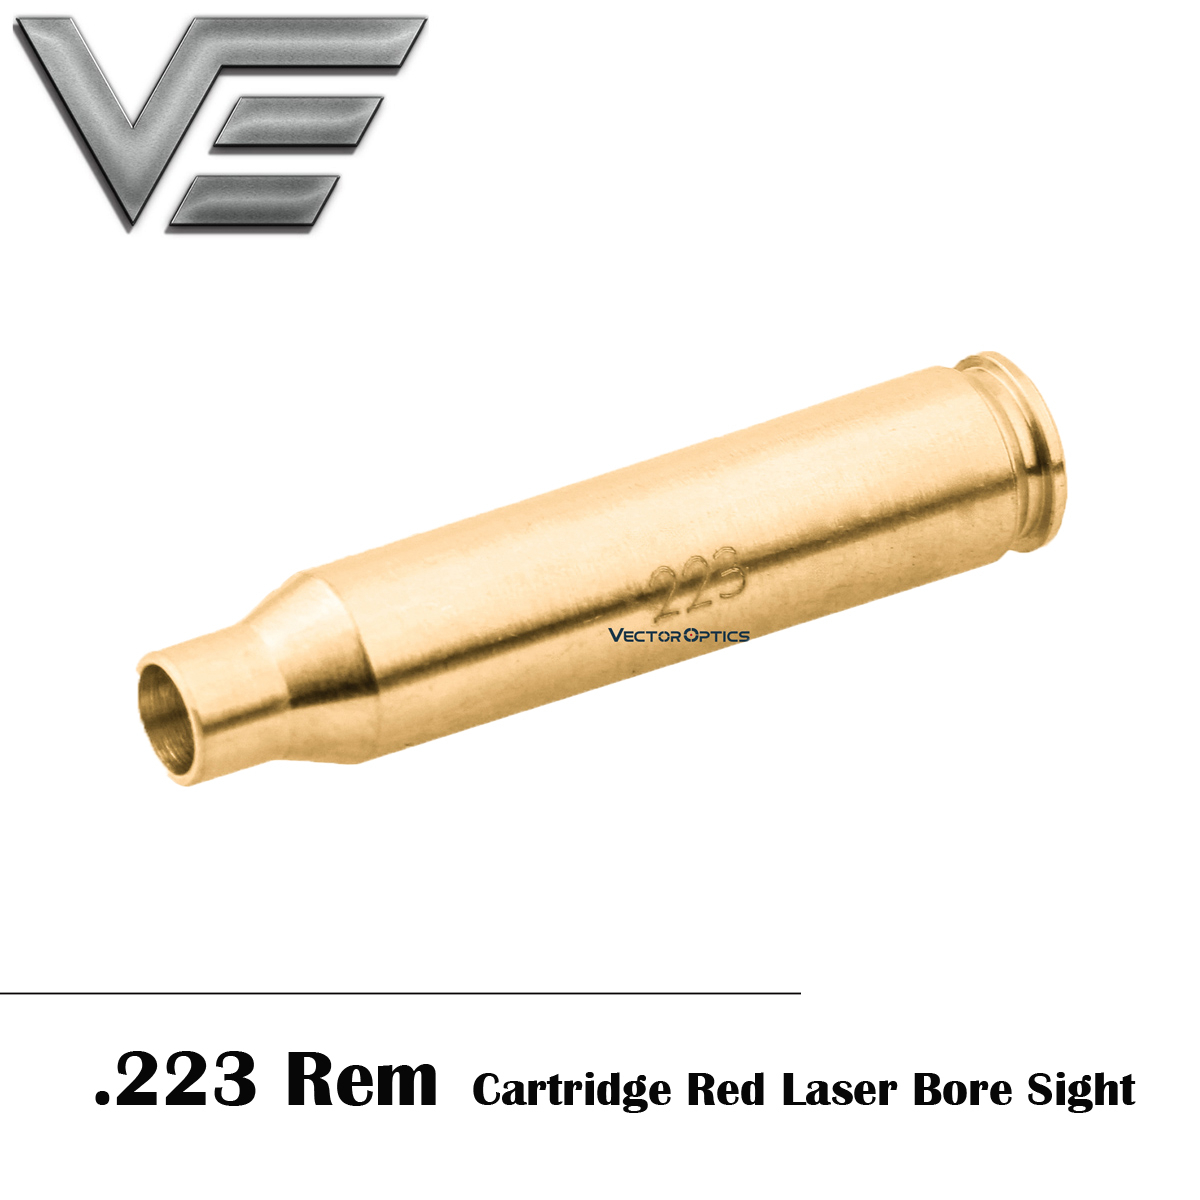 Vector Optics .223 REM 5.56mm Caliber Red Laser Bore Sight Tactical Accuracy Free shipping Laser Boresighter For Riflescope Air